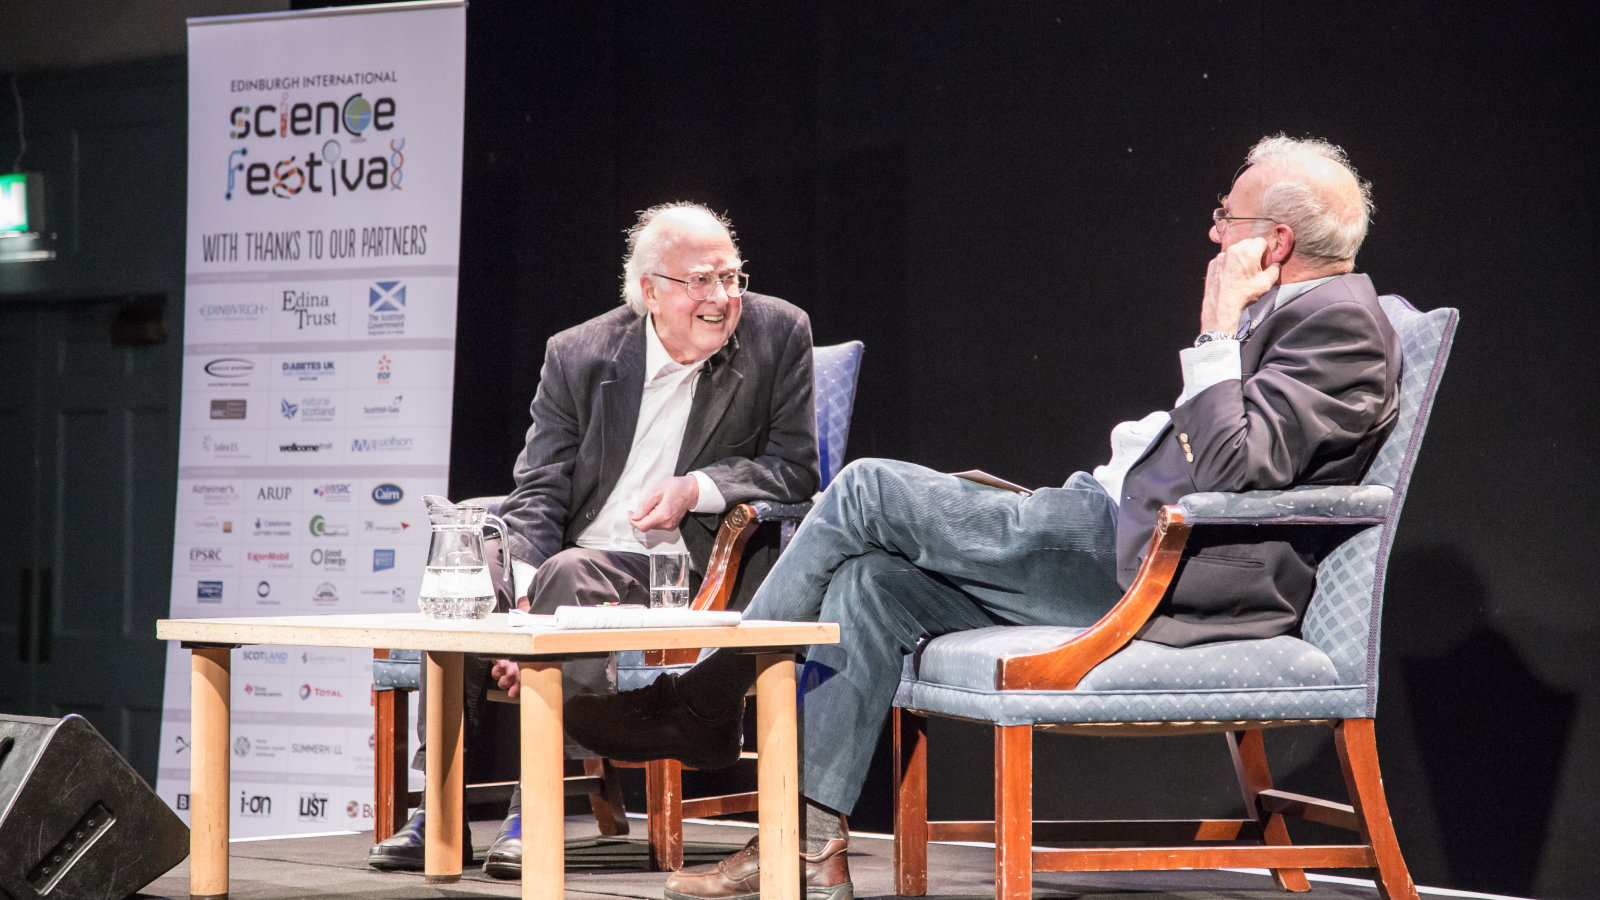 A Conversation with Peter Higgs at the 2014 Science Festival, photographer Ali Wight, credit Edinburgh International Science Festival